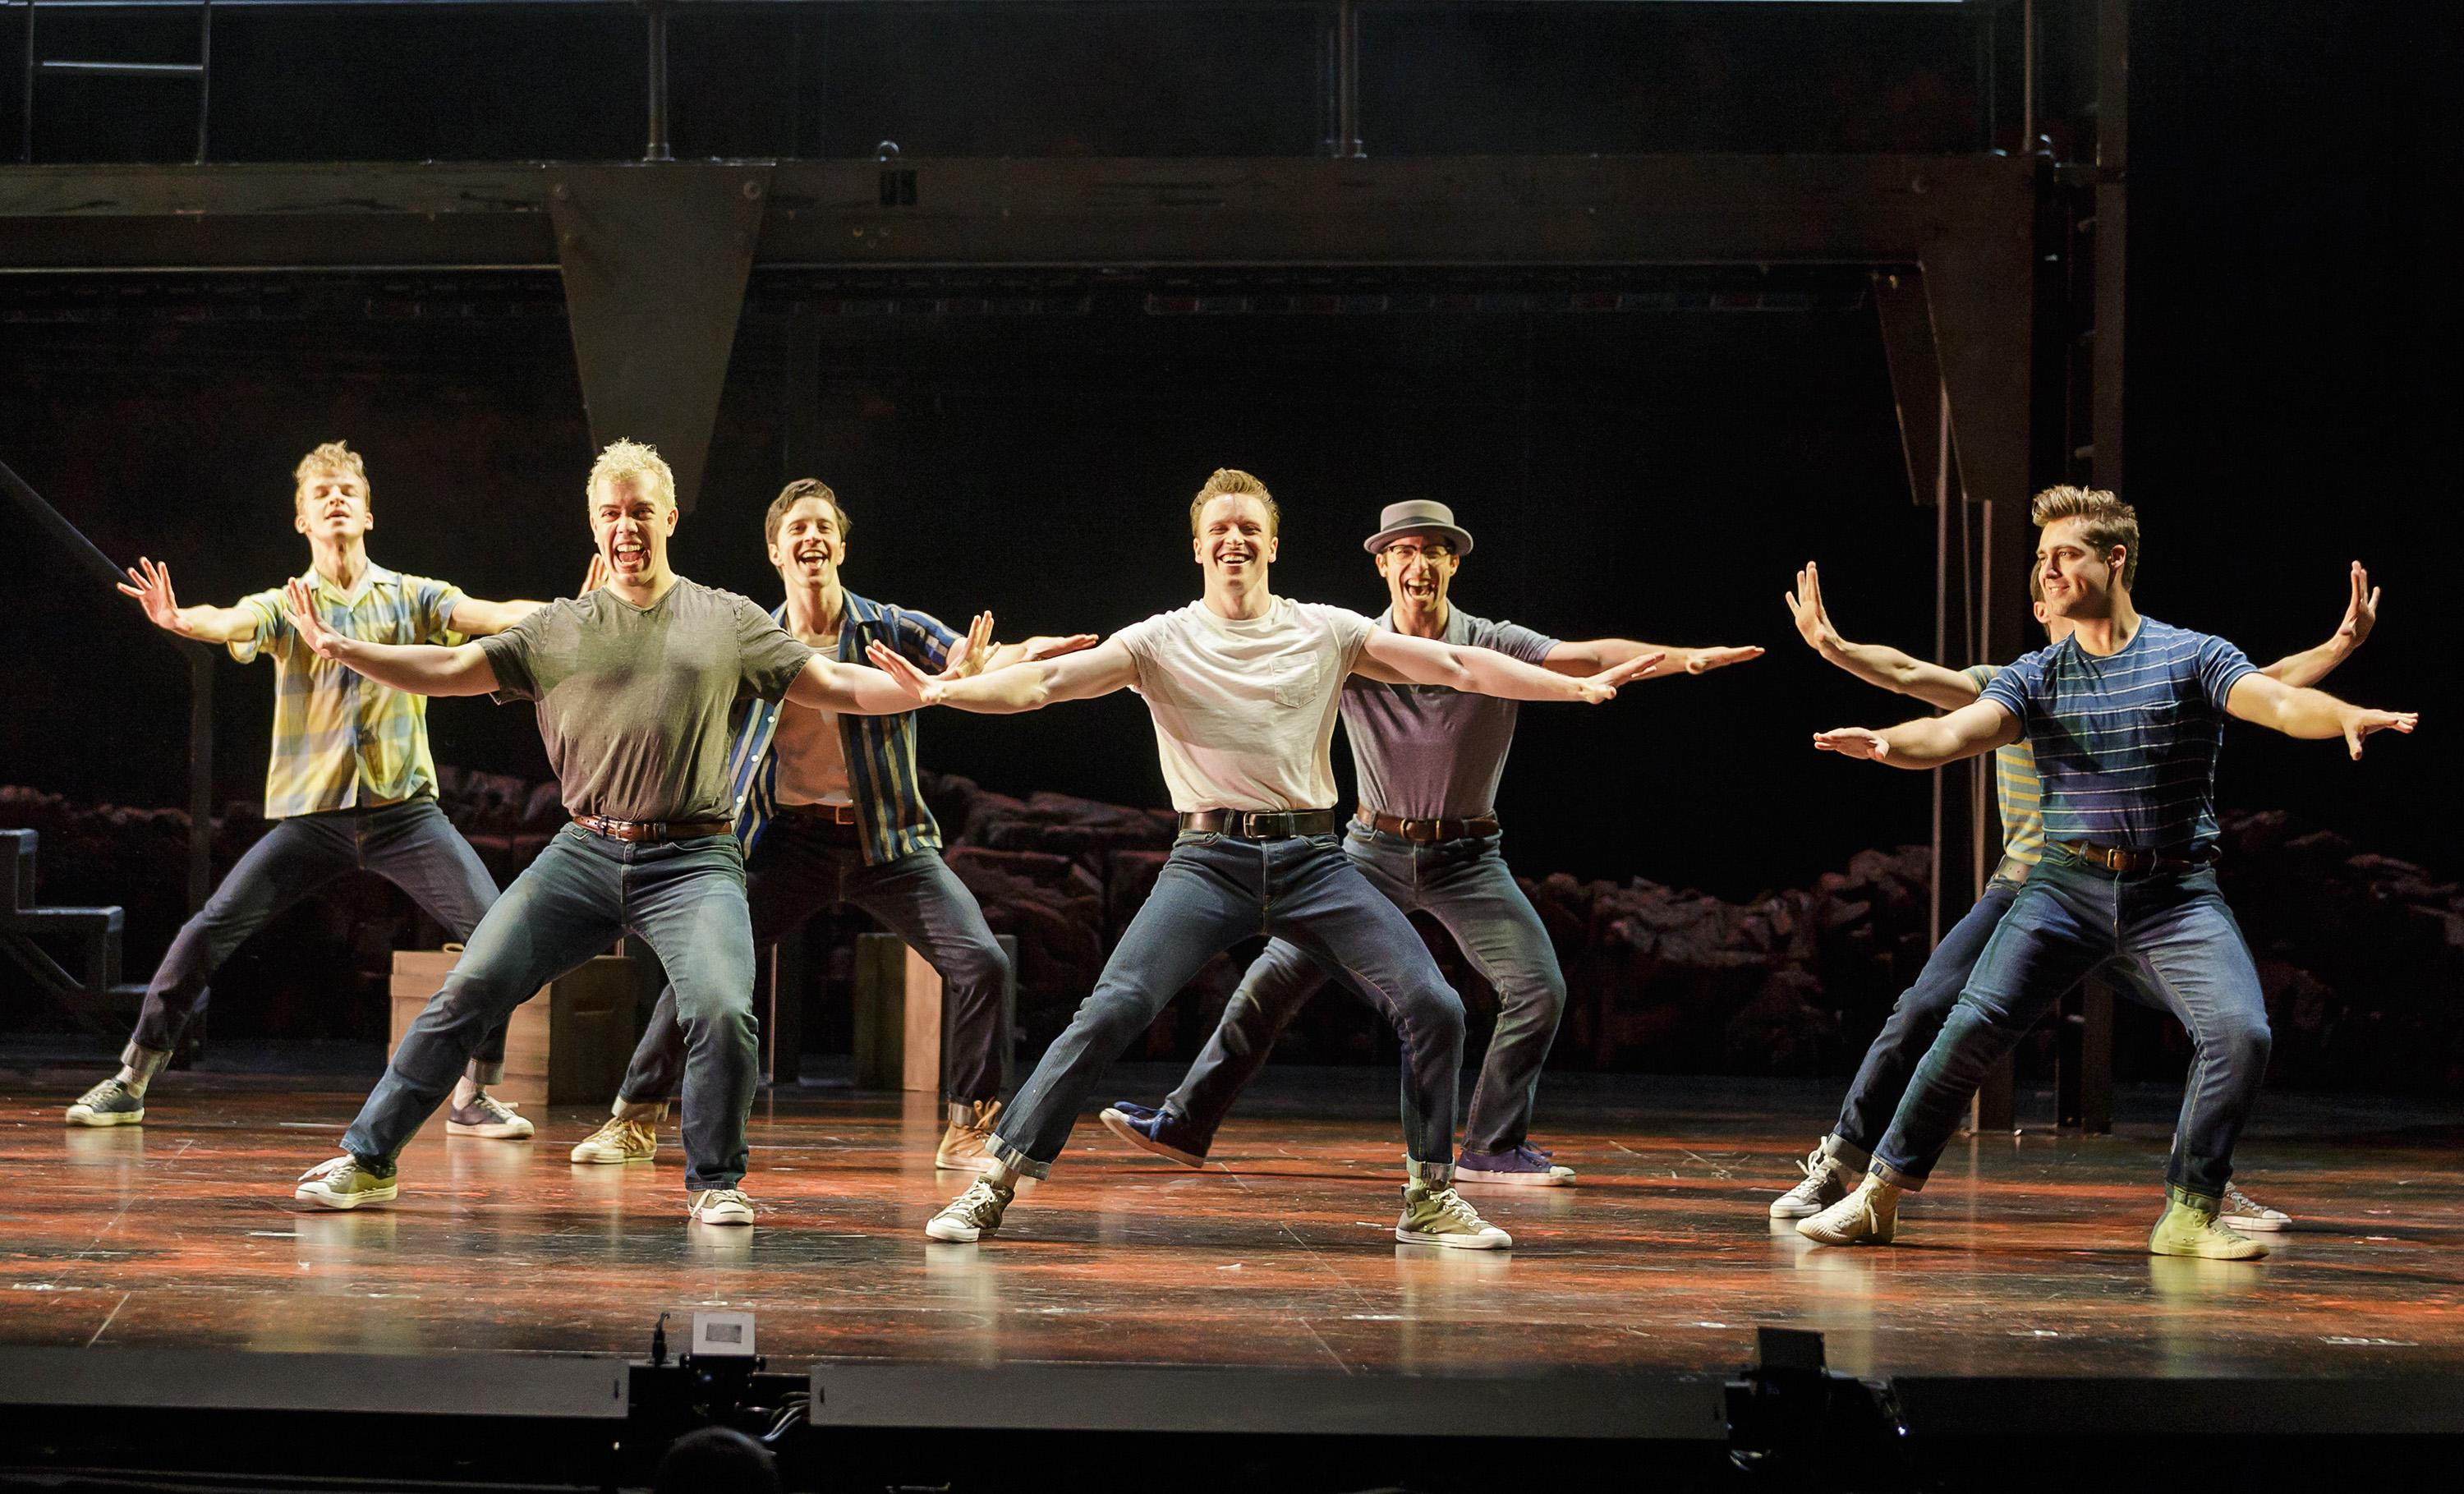 Dan_Lusardi (center) as Riff and the cast of West Side Story at The 5th Avenue Theatre (Photo Credit: Mark Kitaoka)